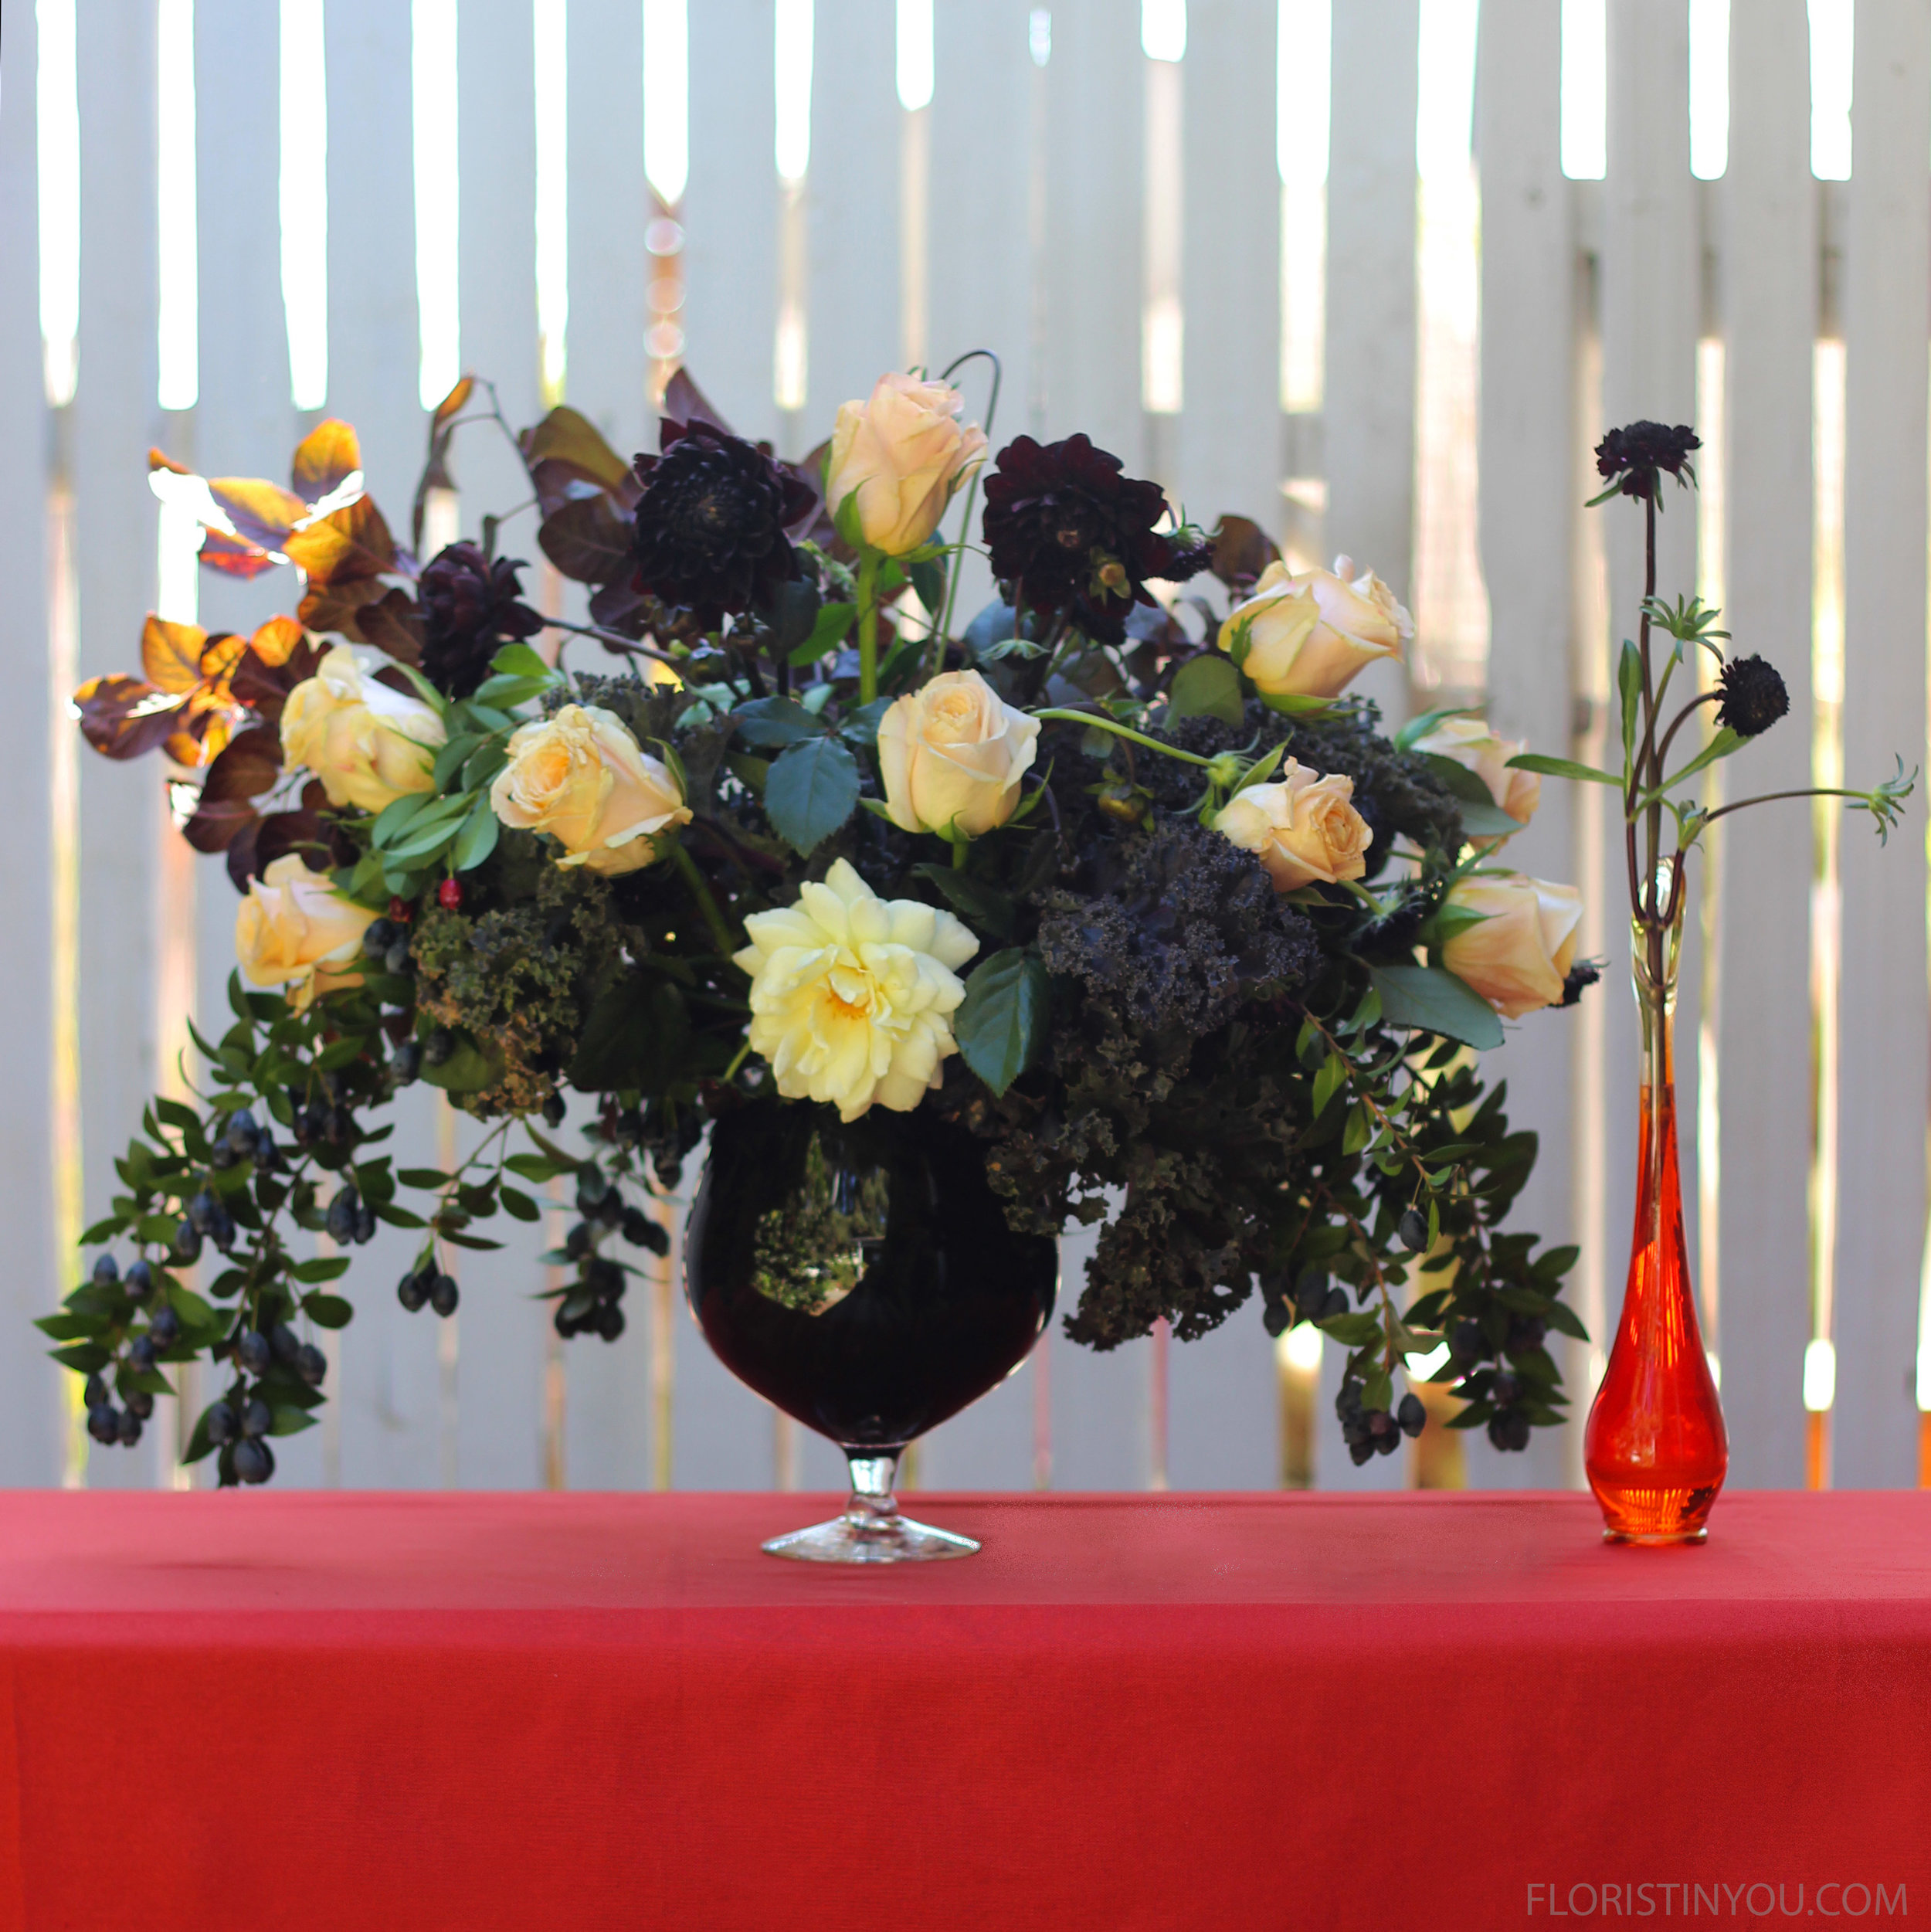 The orange hand blown bud vase compliments the 'black glass' of the arrangement.